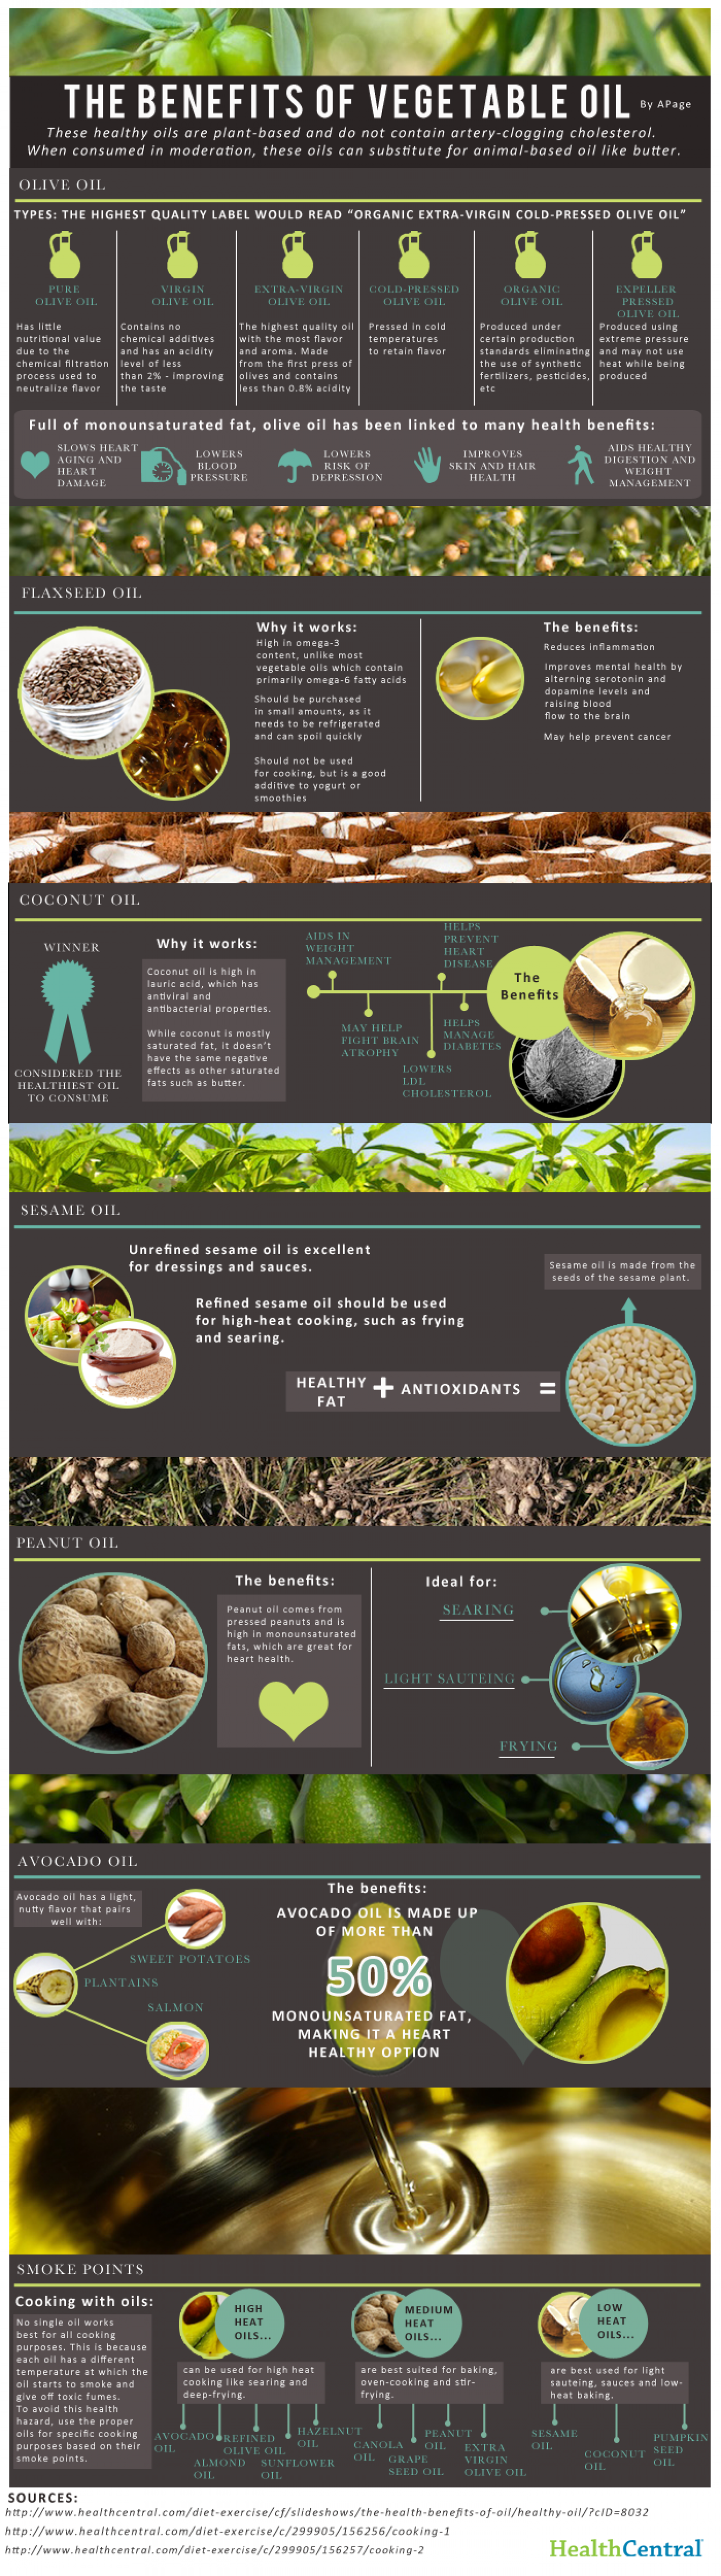 The Benefits of Vegetable Oil Infographic